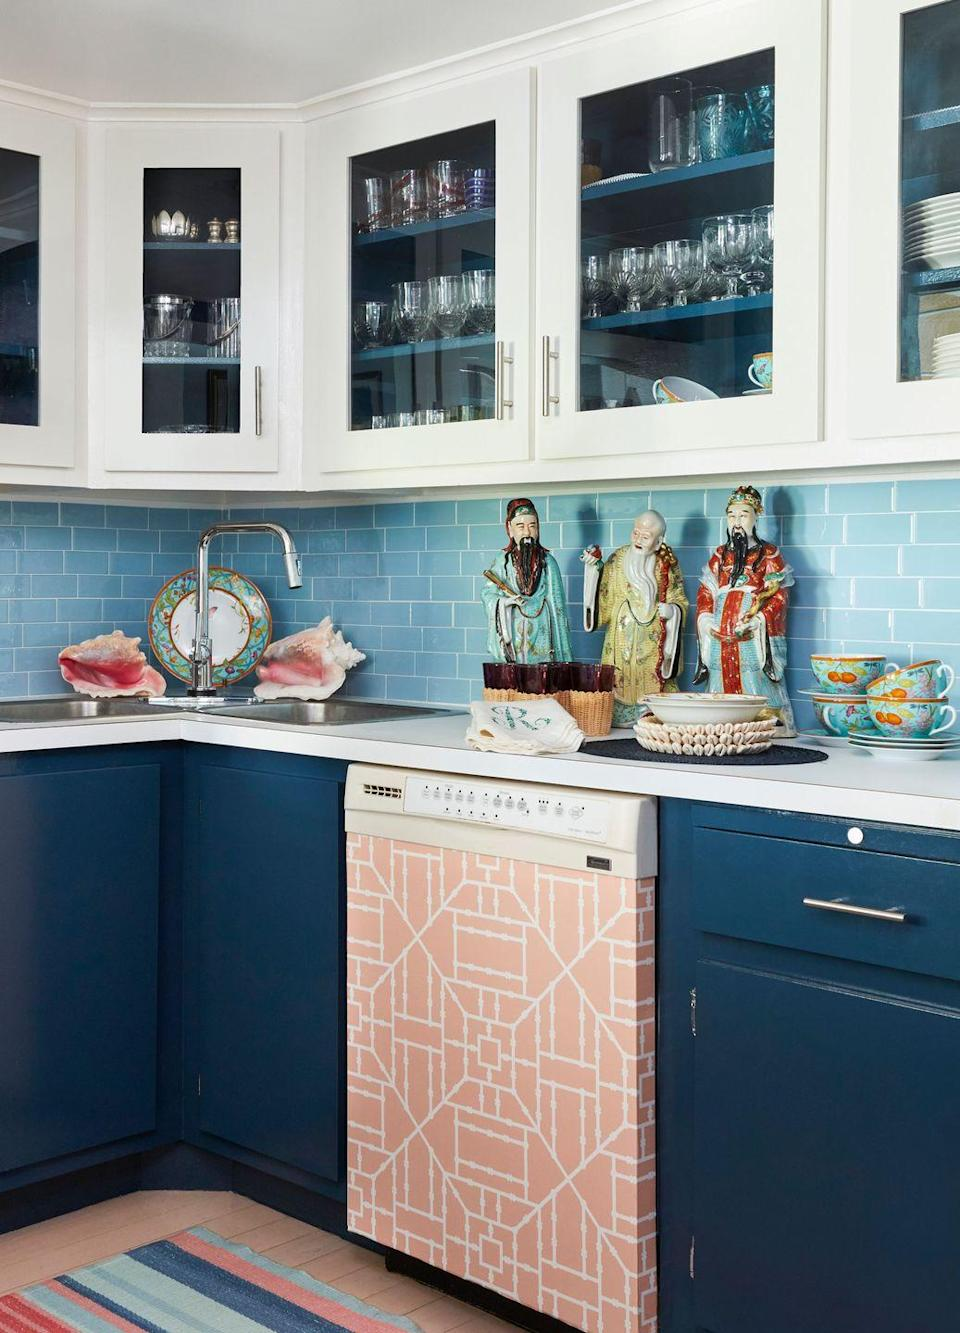 "<p>Steal this idea from Danielle Rollins and pretty up your ugly appliances with contact paper or vinyl wallpaper. <a href=""https://www.housebeautiful.com/design-inspiration/a31247634/danielle-rollins-ugly-dishwasher-makeover/"" rel=""nofollow noopener"" target=""_blank"" data-ylk=""slk:Here's how."" class=""link rapid-noclick-resp"">Here's how.</a></p>"